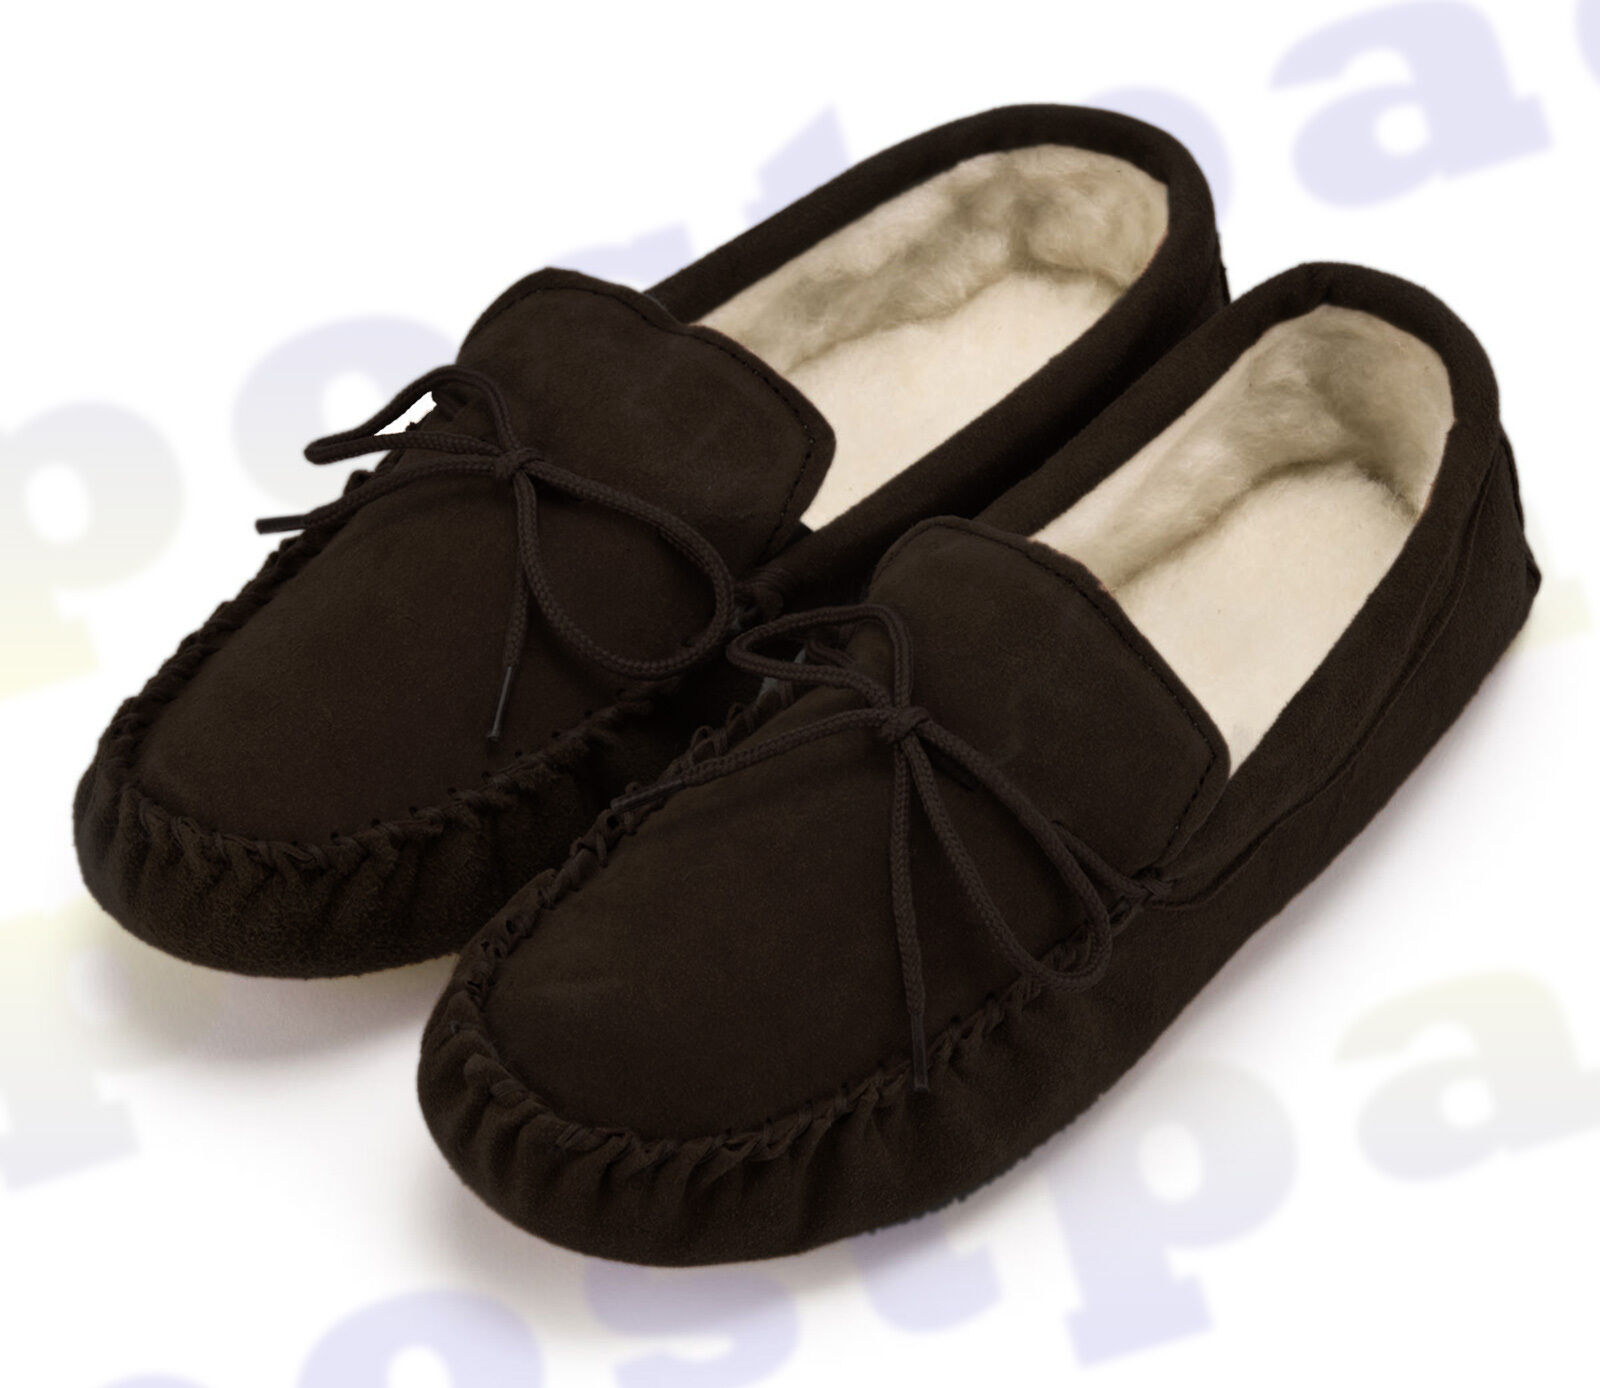 Hombre MOCCASIN SLIPPERS Genuine Sheepskin Suede Talla Lambswool Soft Sole - Talla Suede 8-12 7fa375